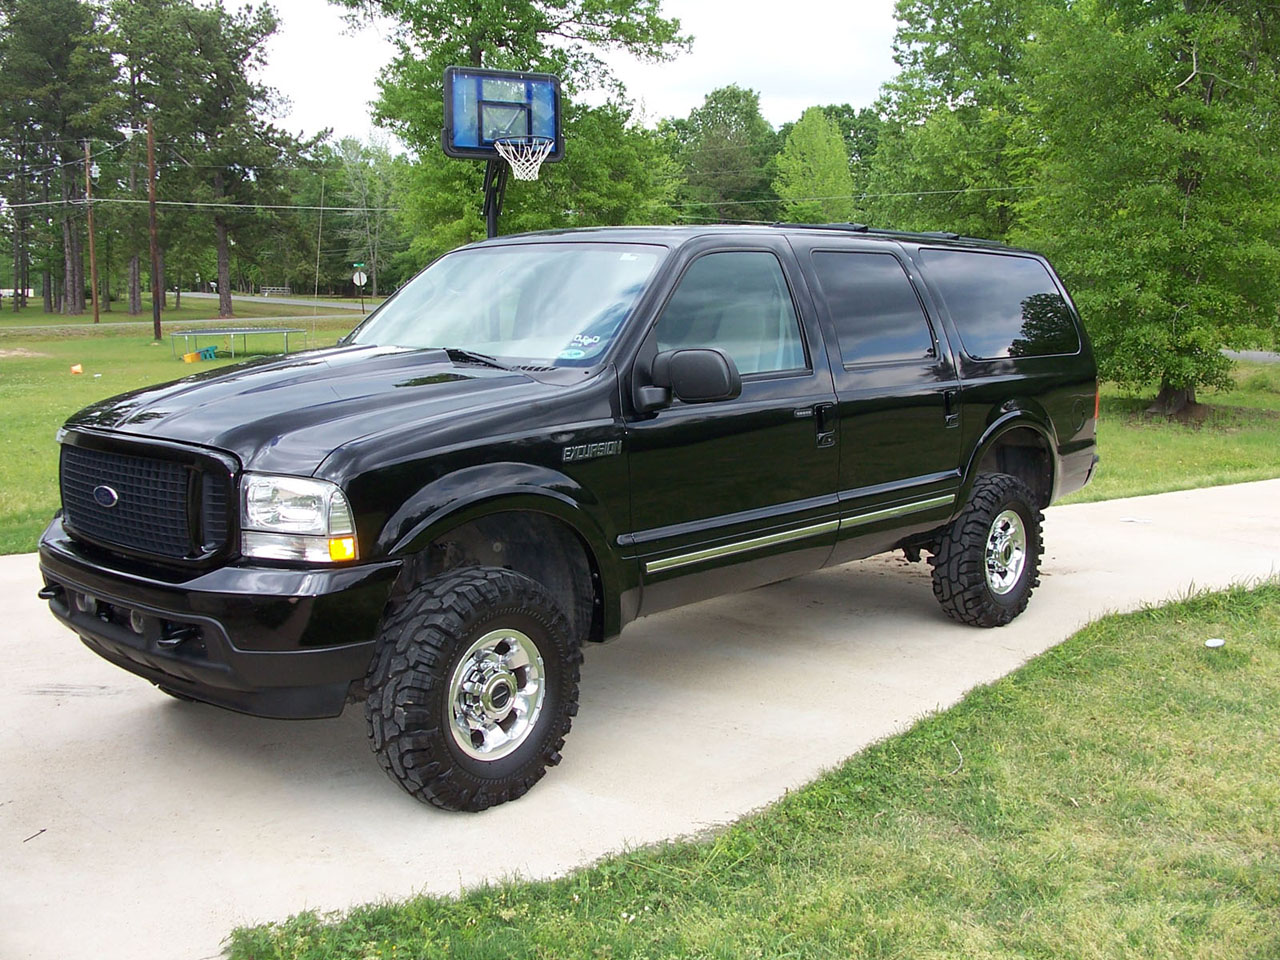 Ford excursion photo - 1